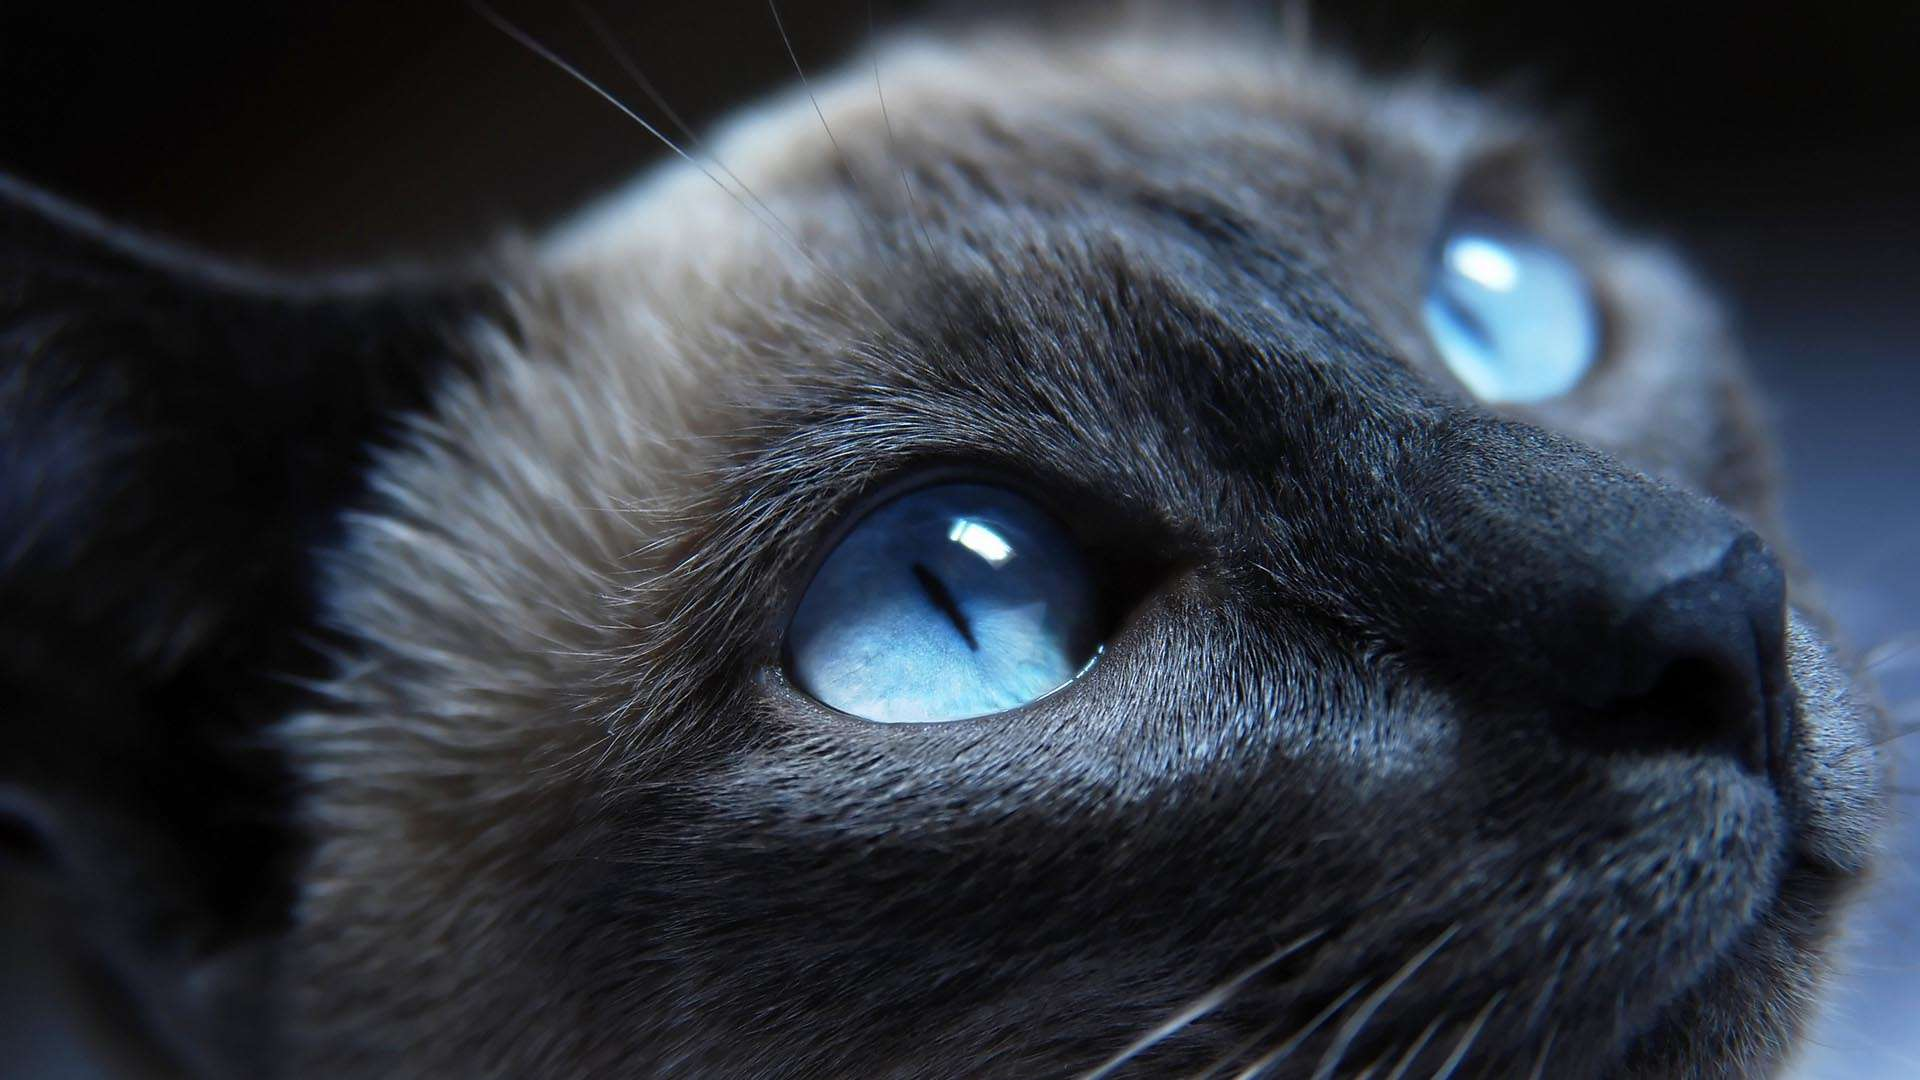 Cat Blue Eyes HD Wallpaper FullHDWpp   Full HD Wallpapers 1920x1080 1920x1080